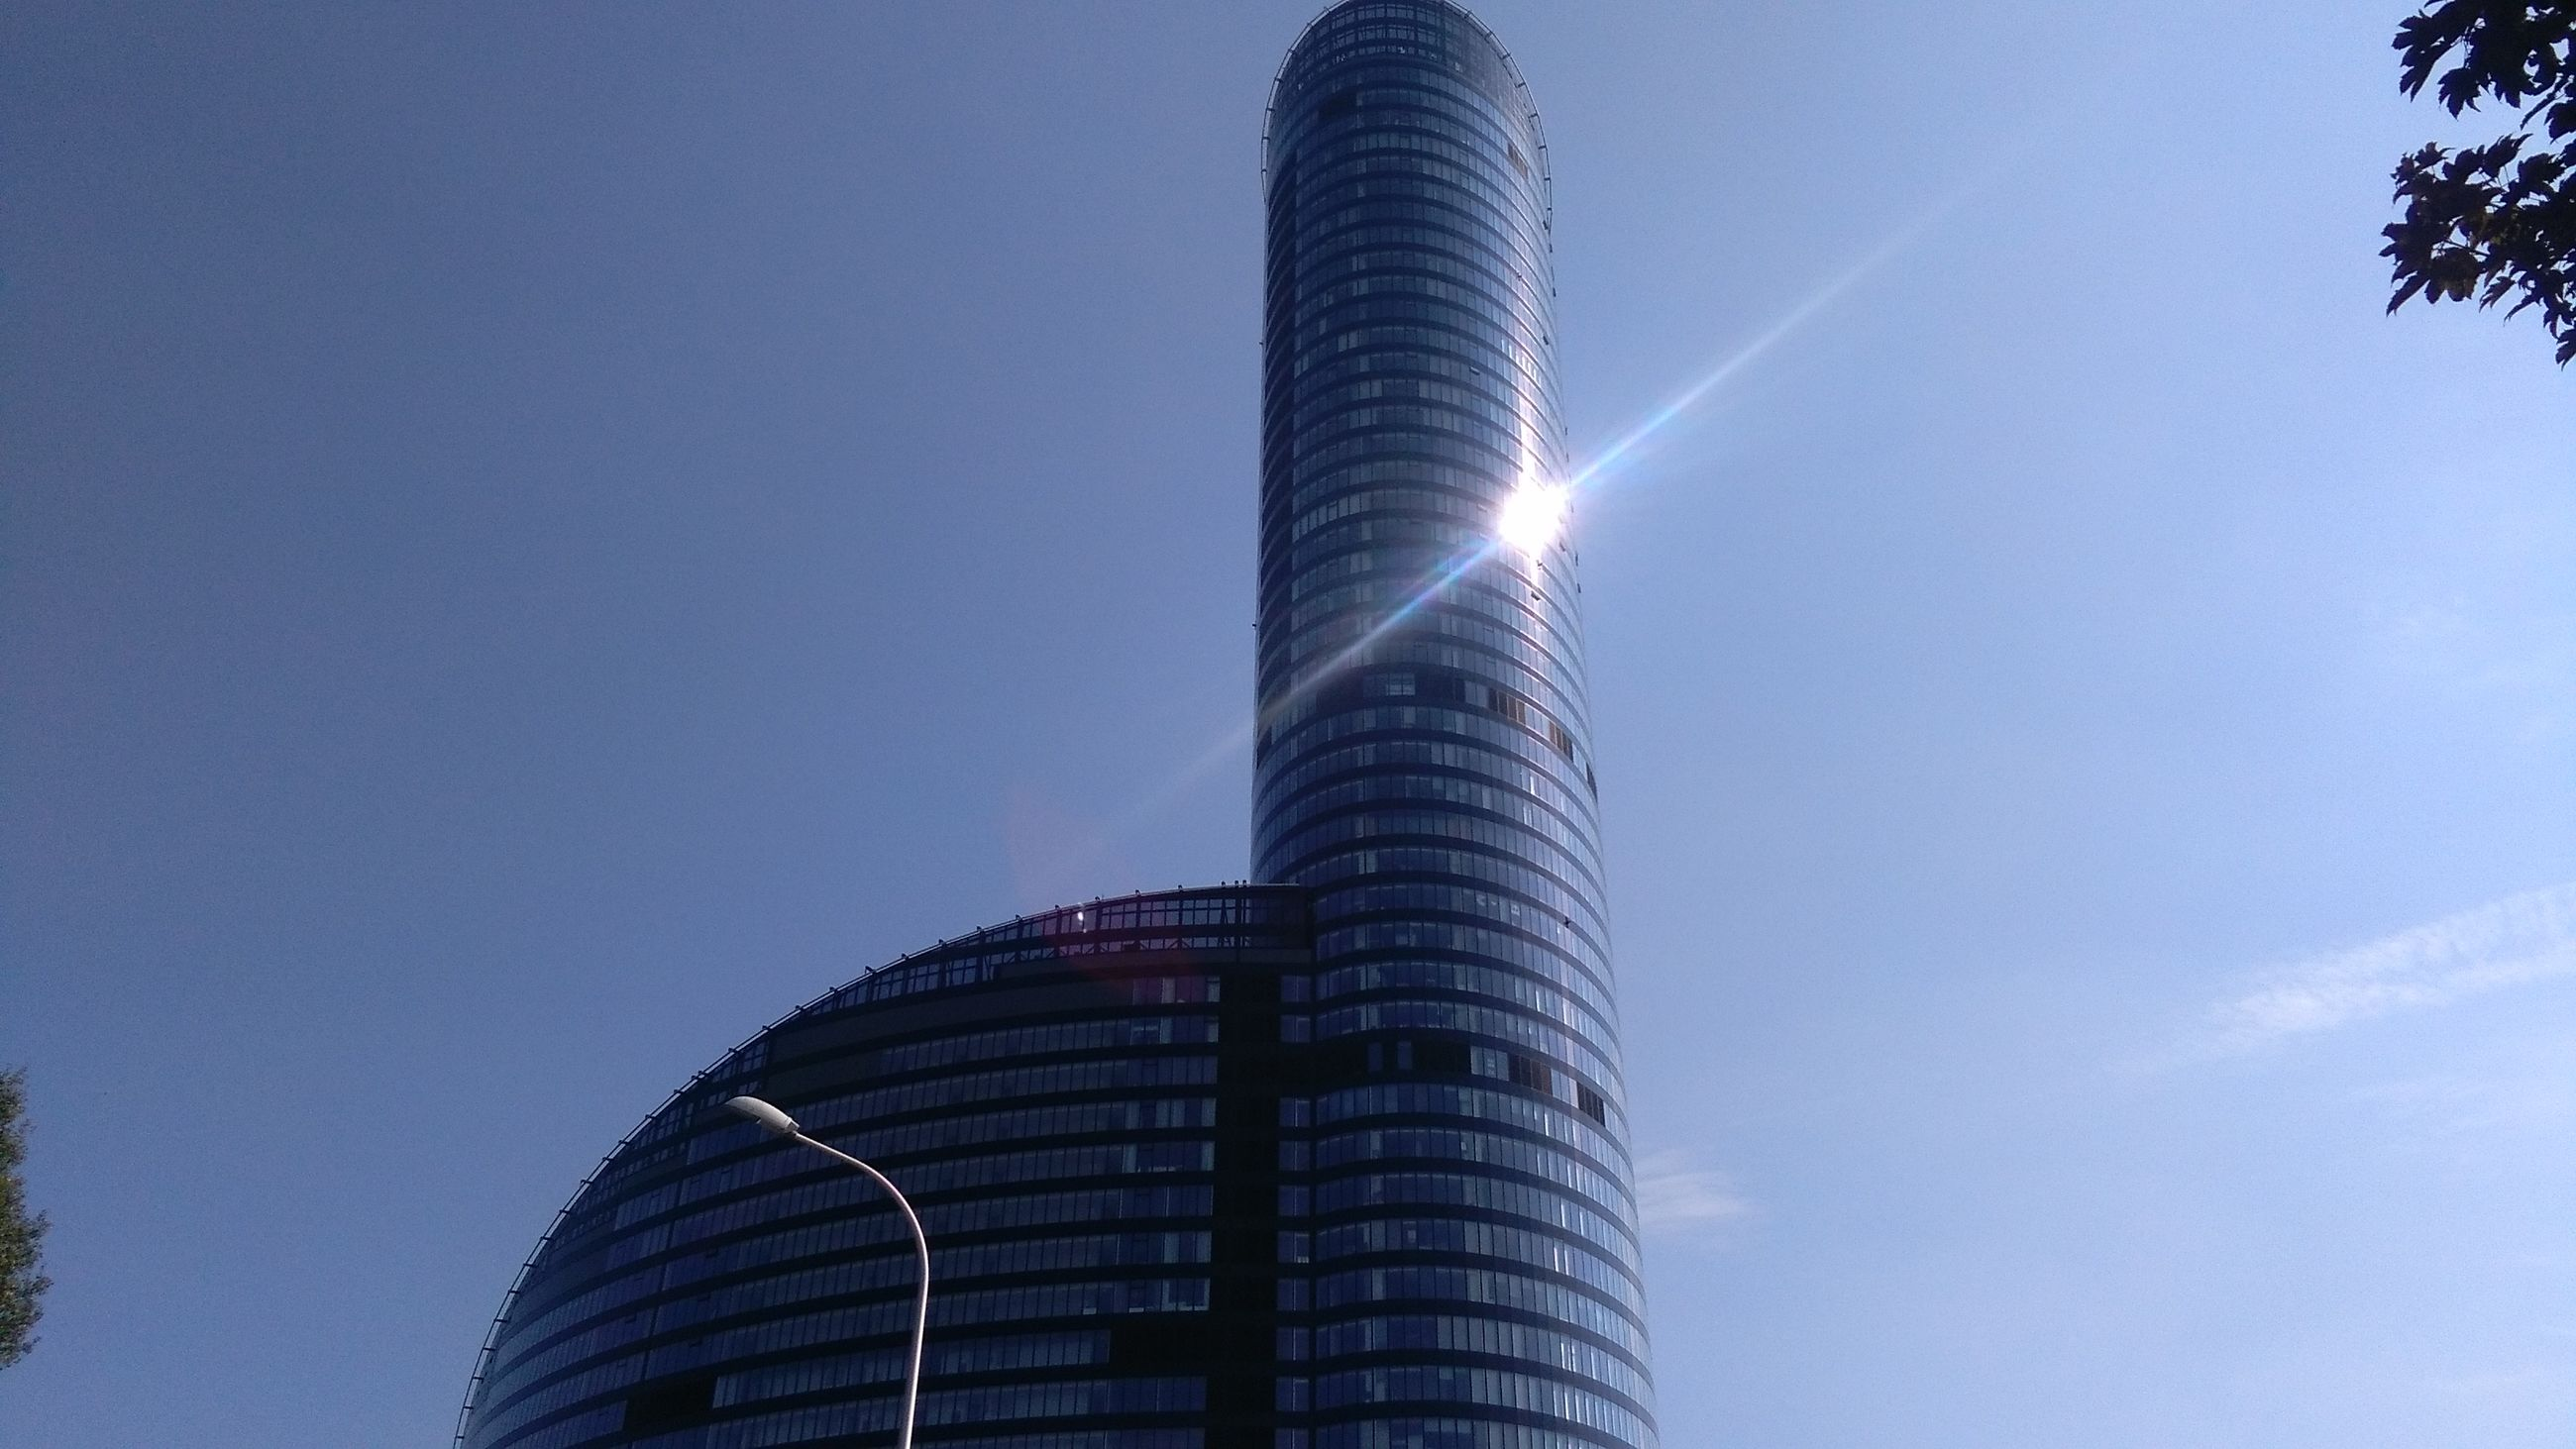 low angle view, architecture, skyscraper, built structure, modern, building exterior, no people, sky, day, outdoors, sunlight, city, travel destinations, clear sky